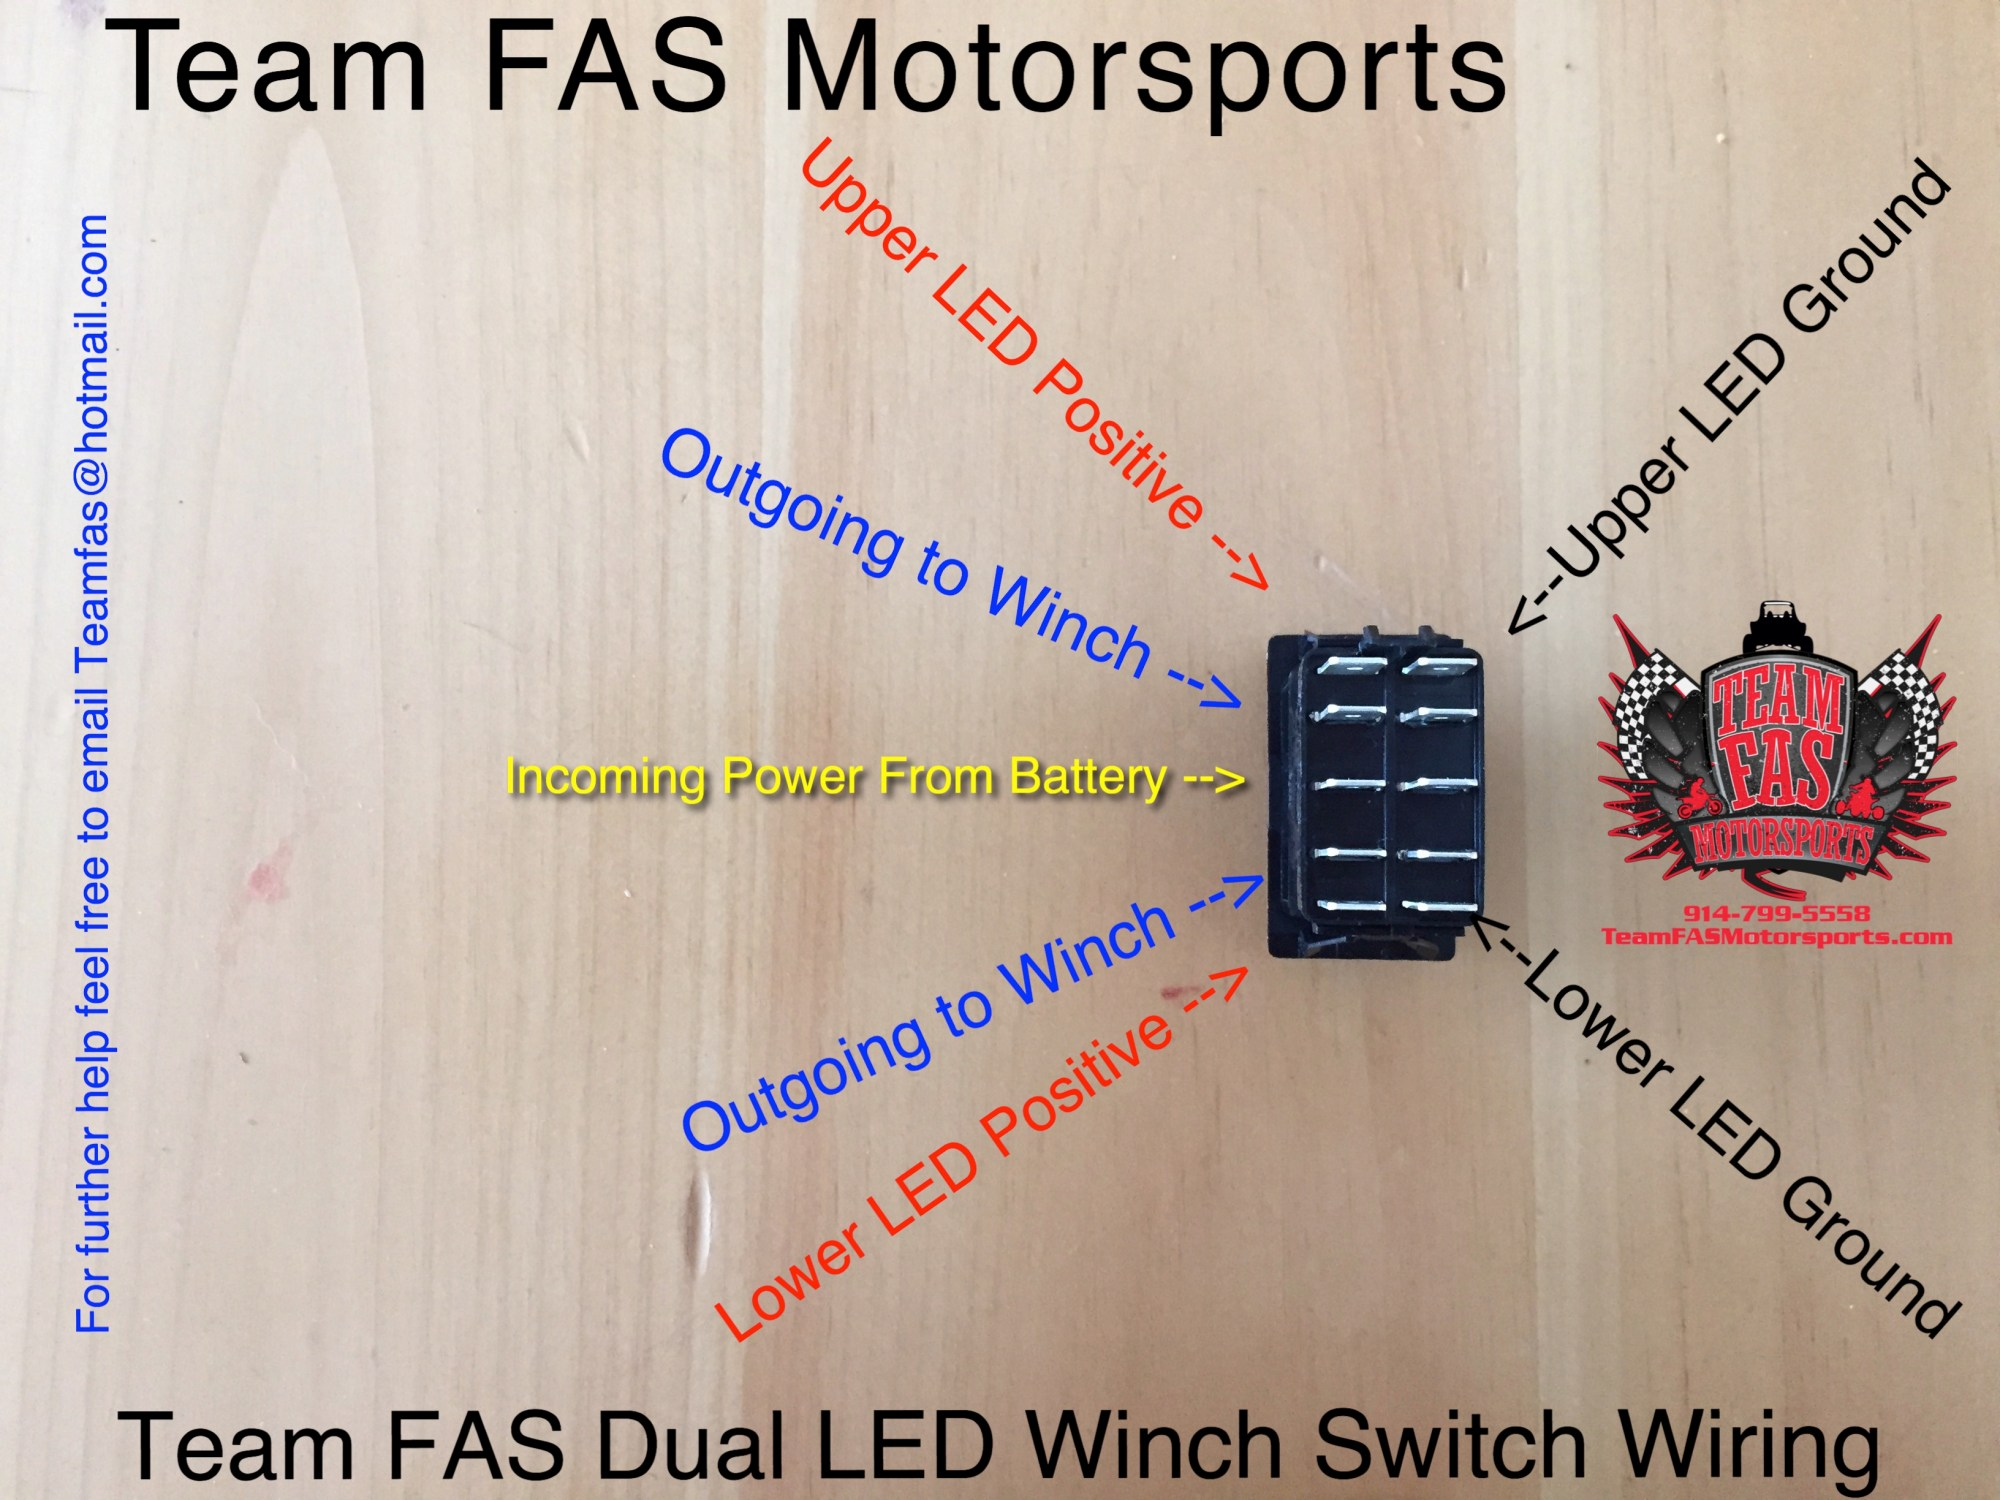 hight resolution of wiring diagrams rh teamfasmotorsports com 3dcartstores com 2013 rzr 800 wiring 2008 polaris rzr wiring